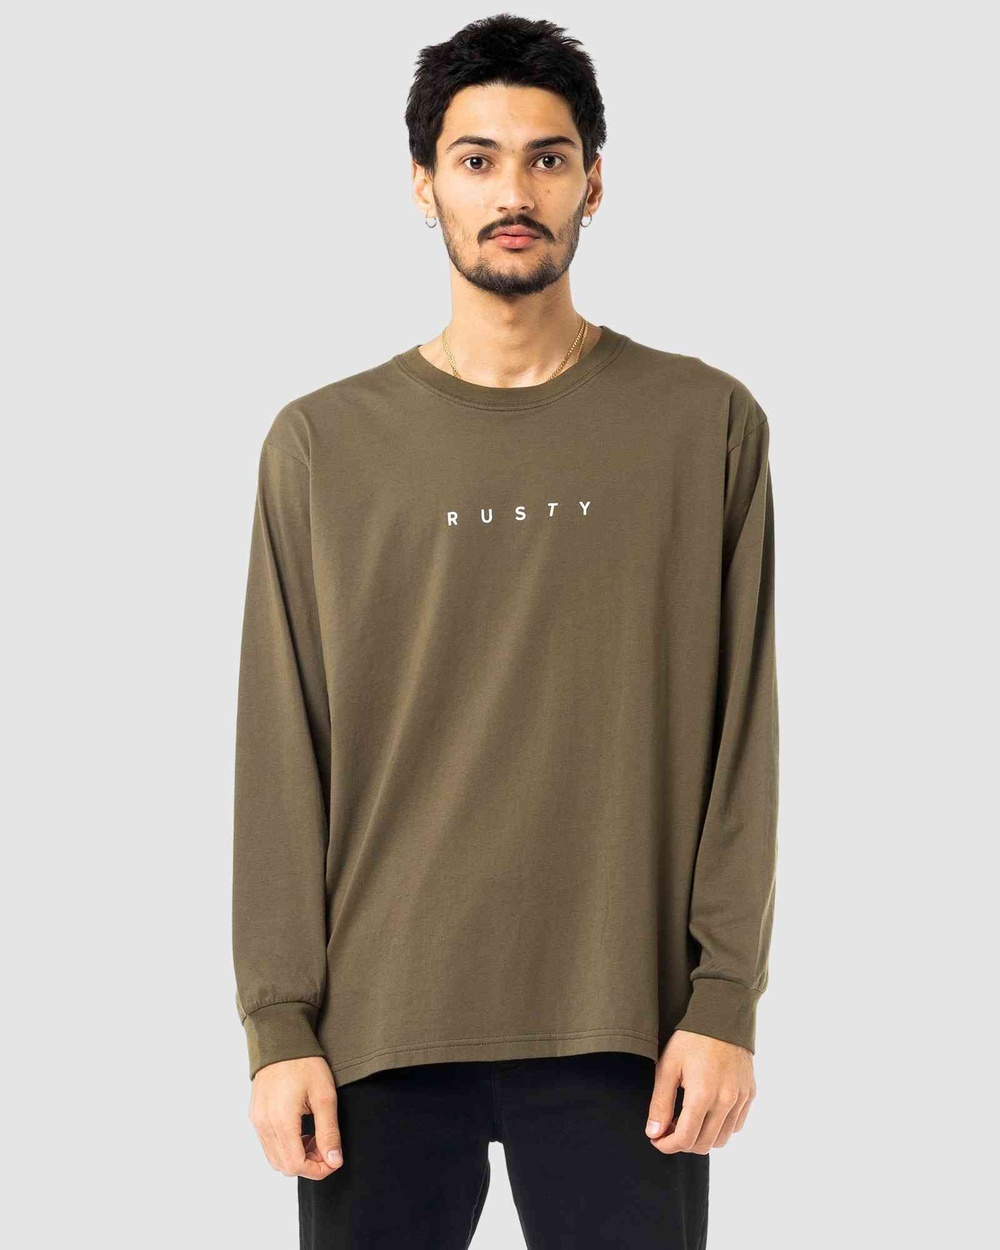 Rusty - Short Cut Long Sleeve Tee - Long Sleeve T-Shirts (GGN) Short Cut Long Sleeve Tee